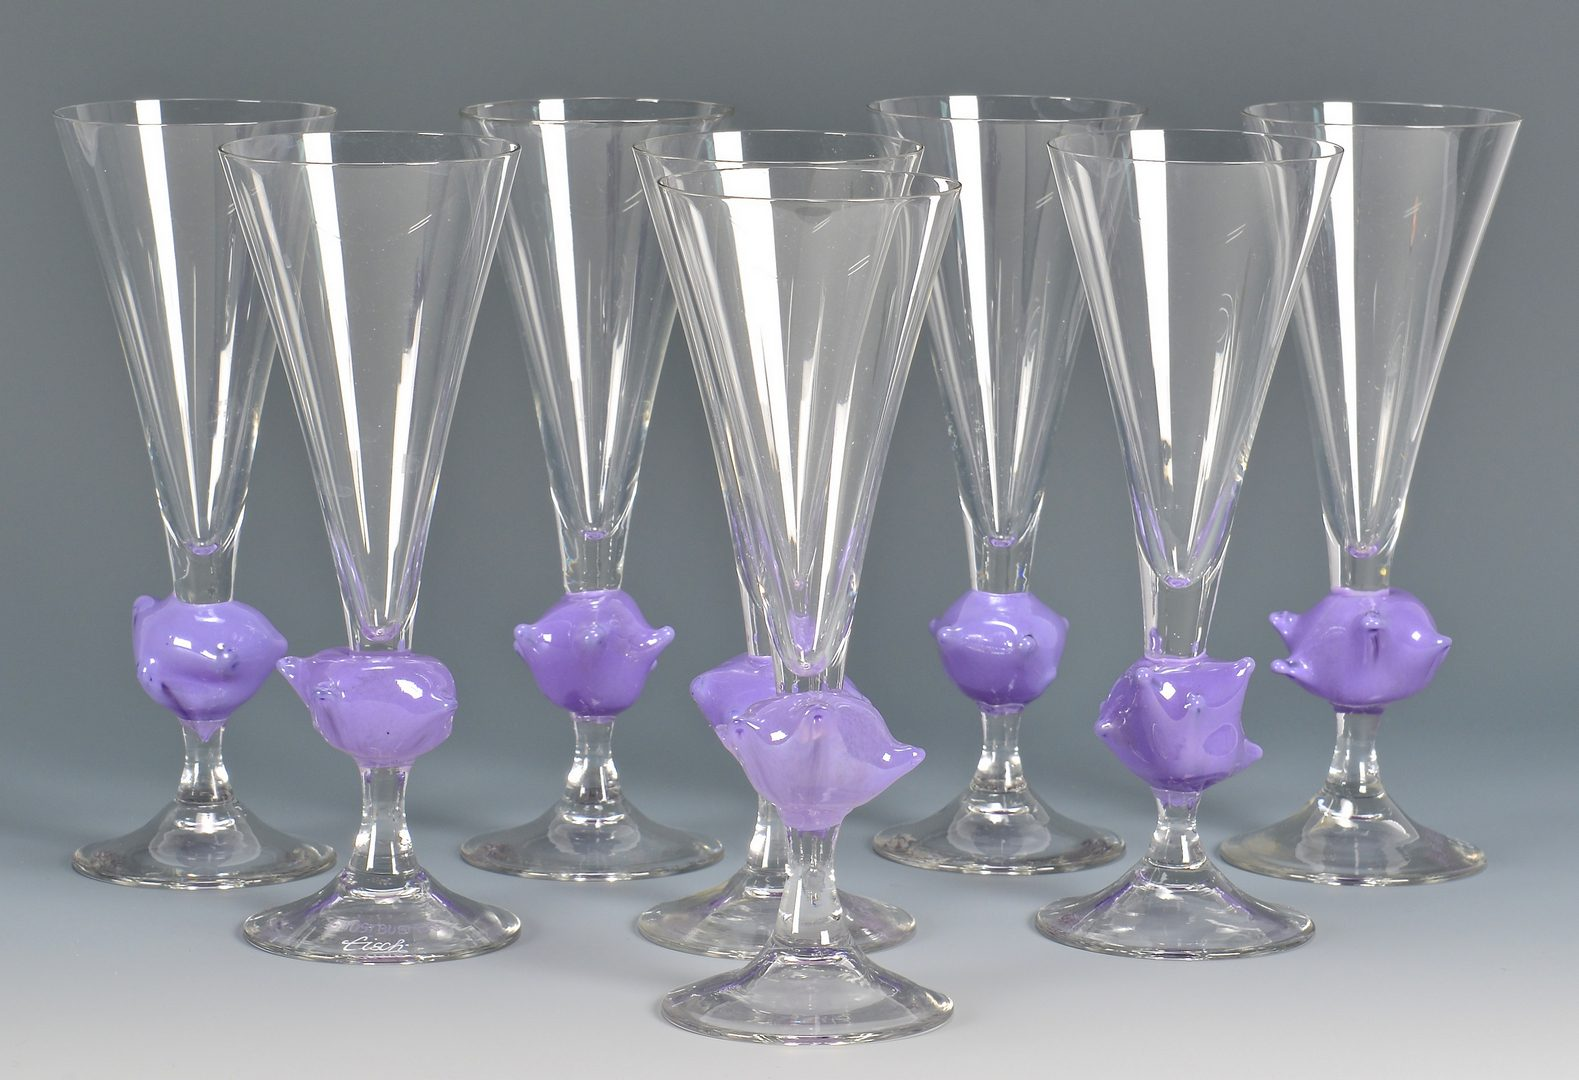 Lot 43: Erwin Eisch Ghostbuster Glasses & Fish Bowl